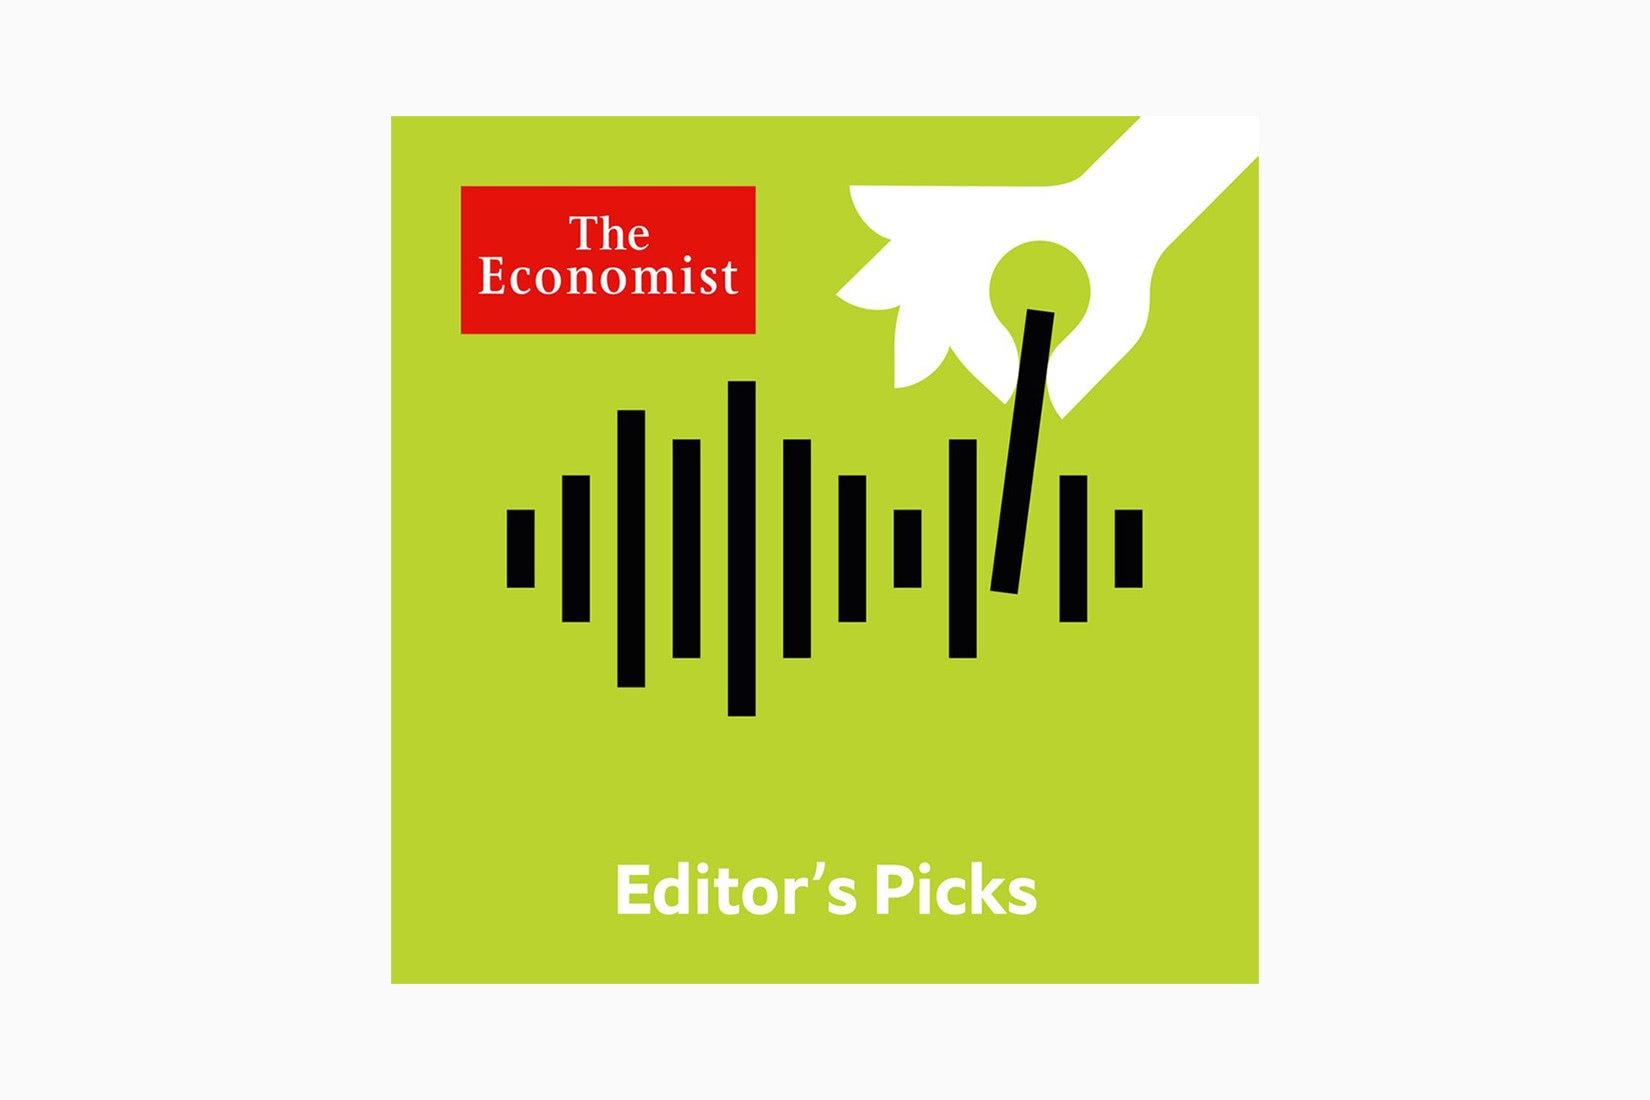 best podcasts editor's picks the economist luxe digital